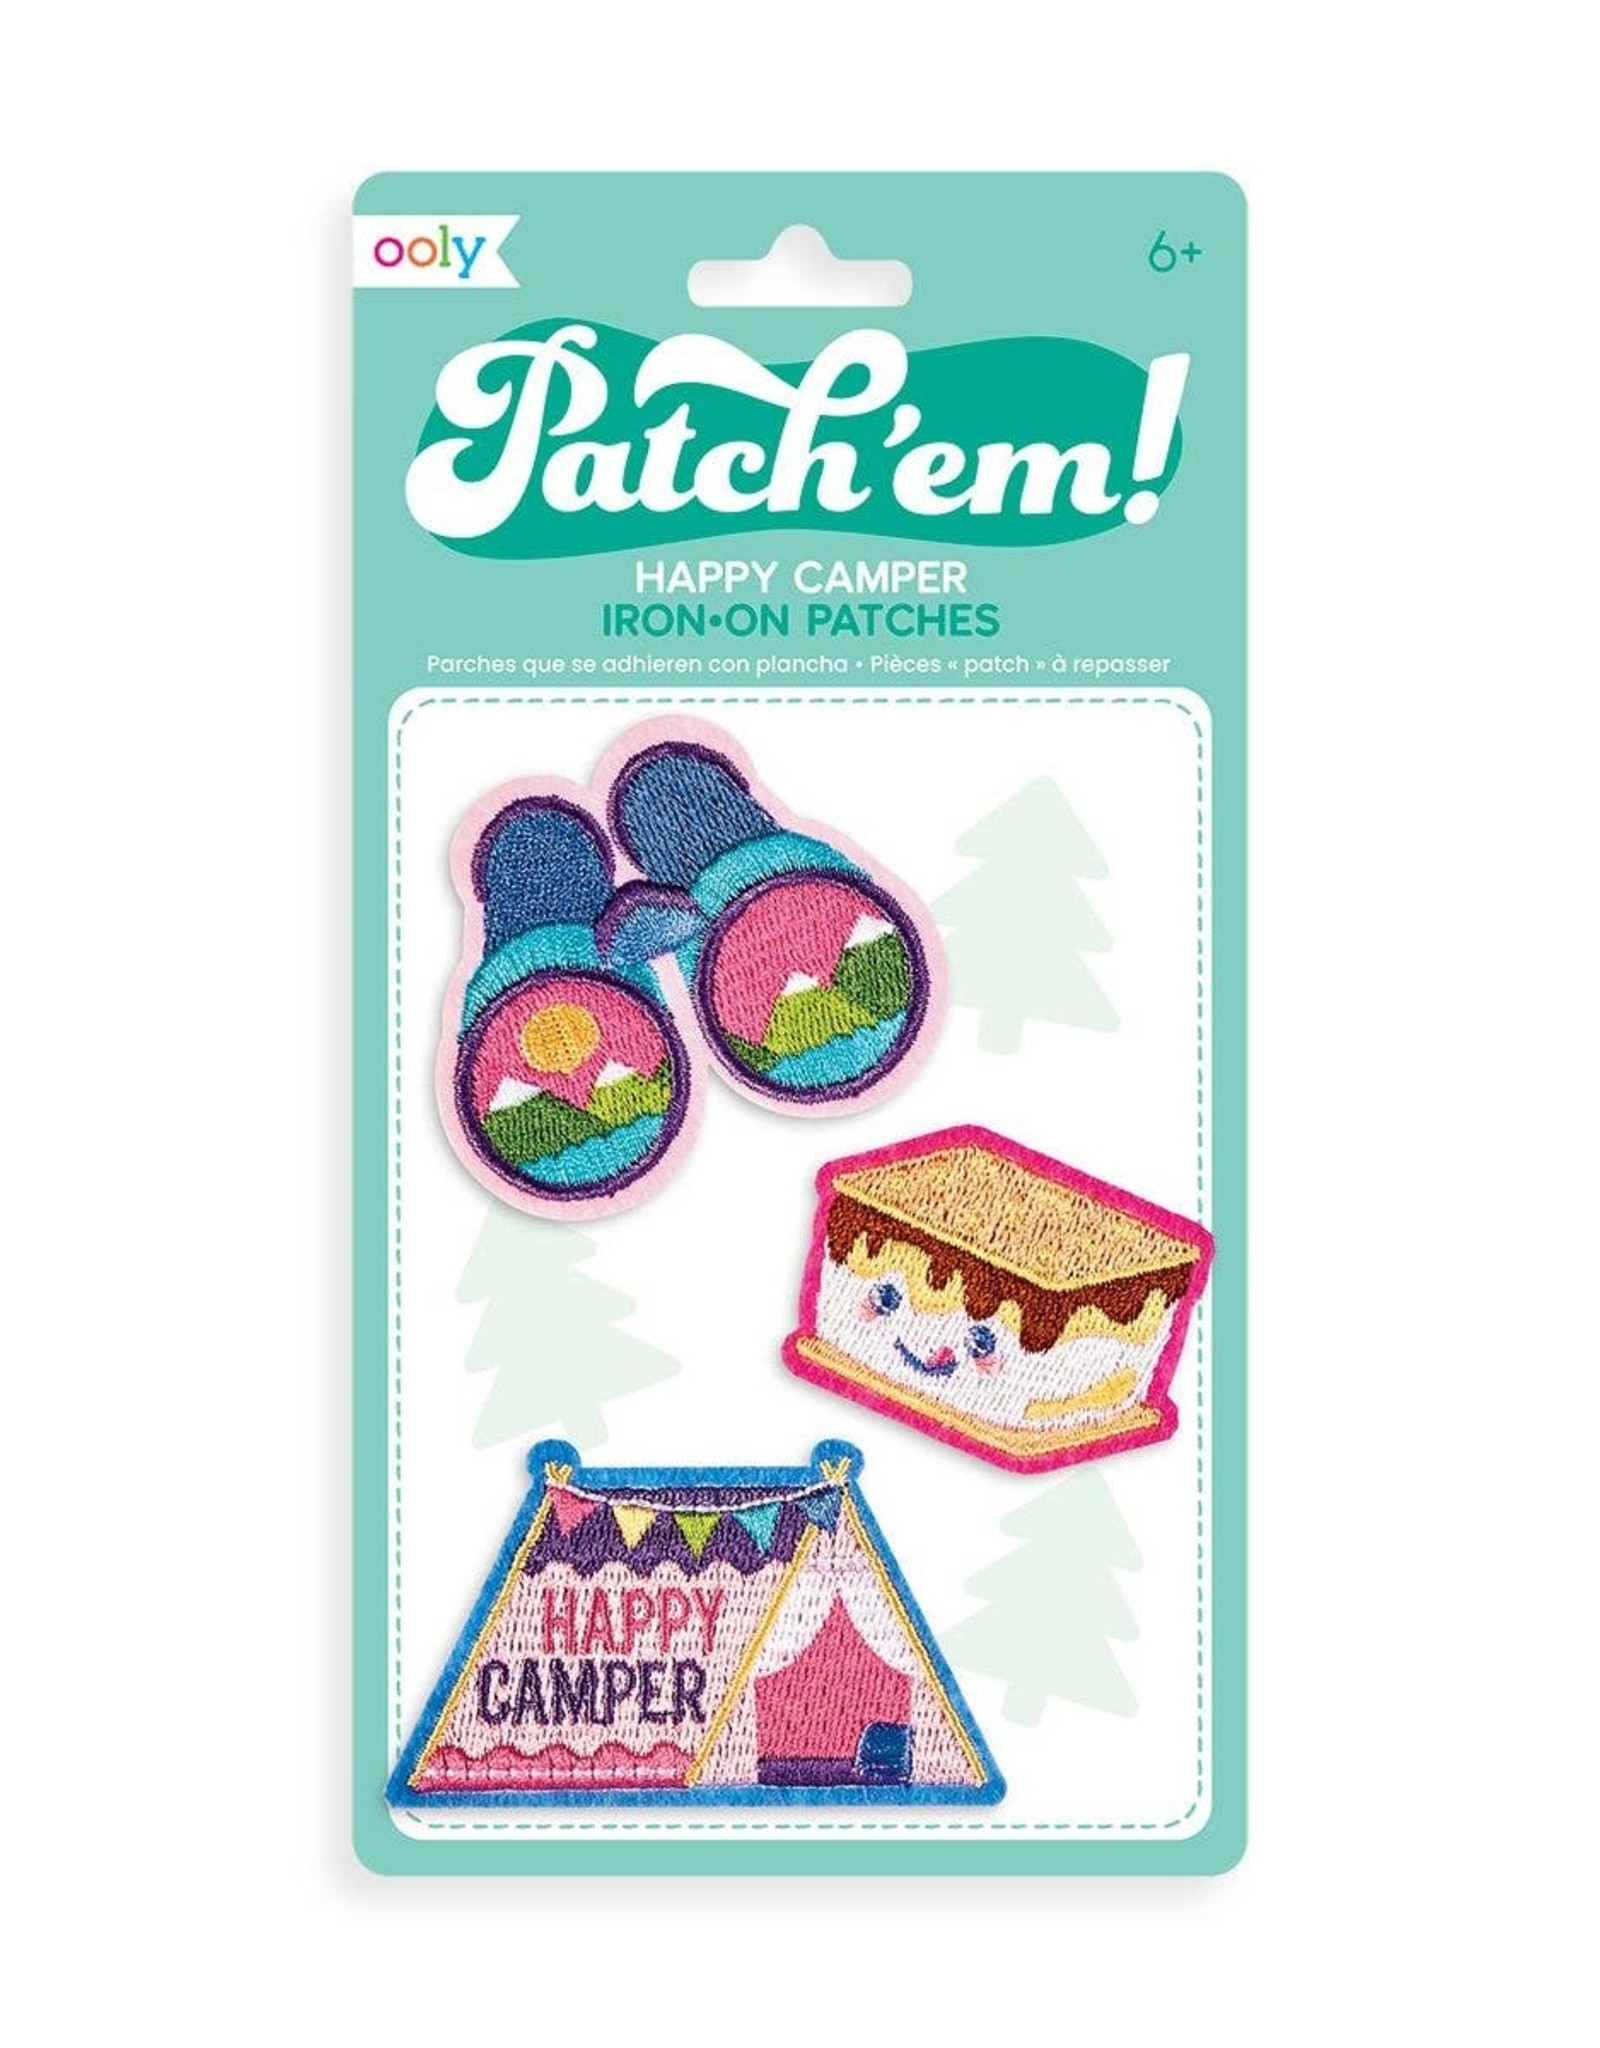 Ooly Ooly   Patch 'em Iron-on Patches: Happy Camper